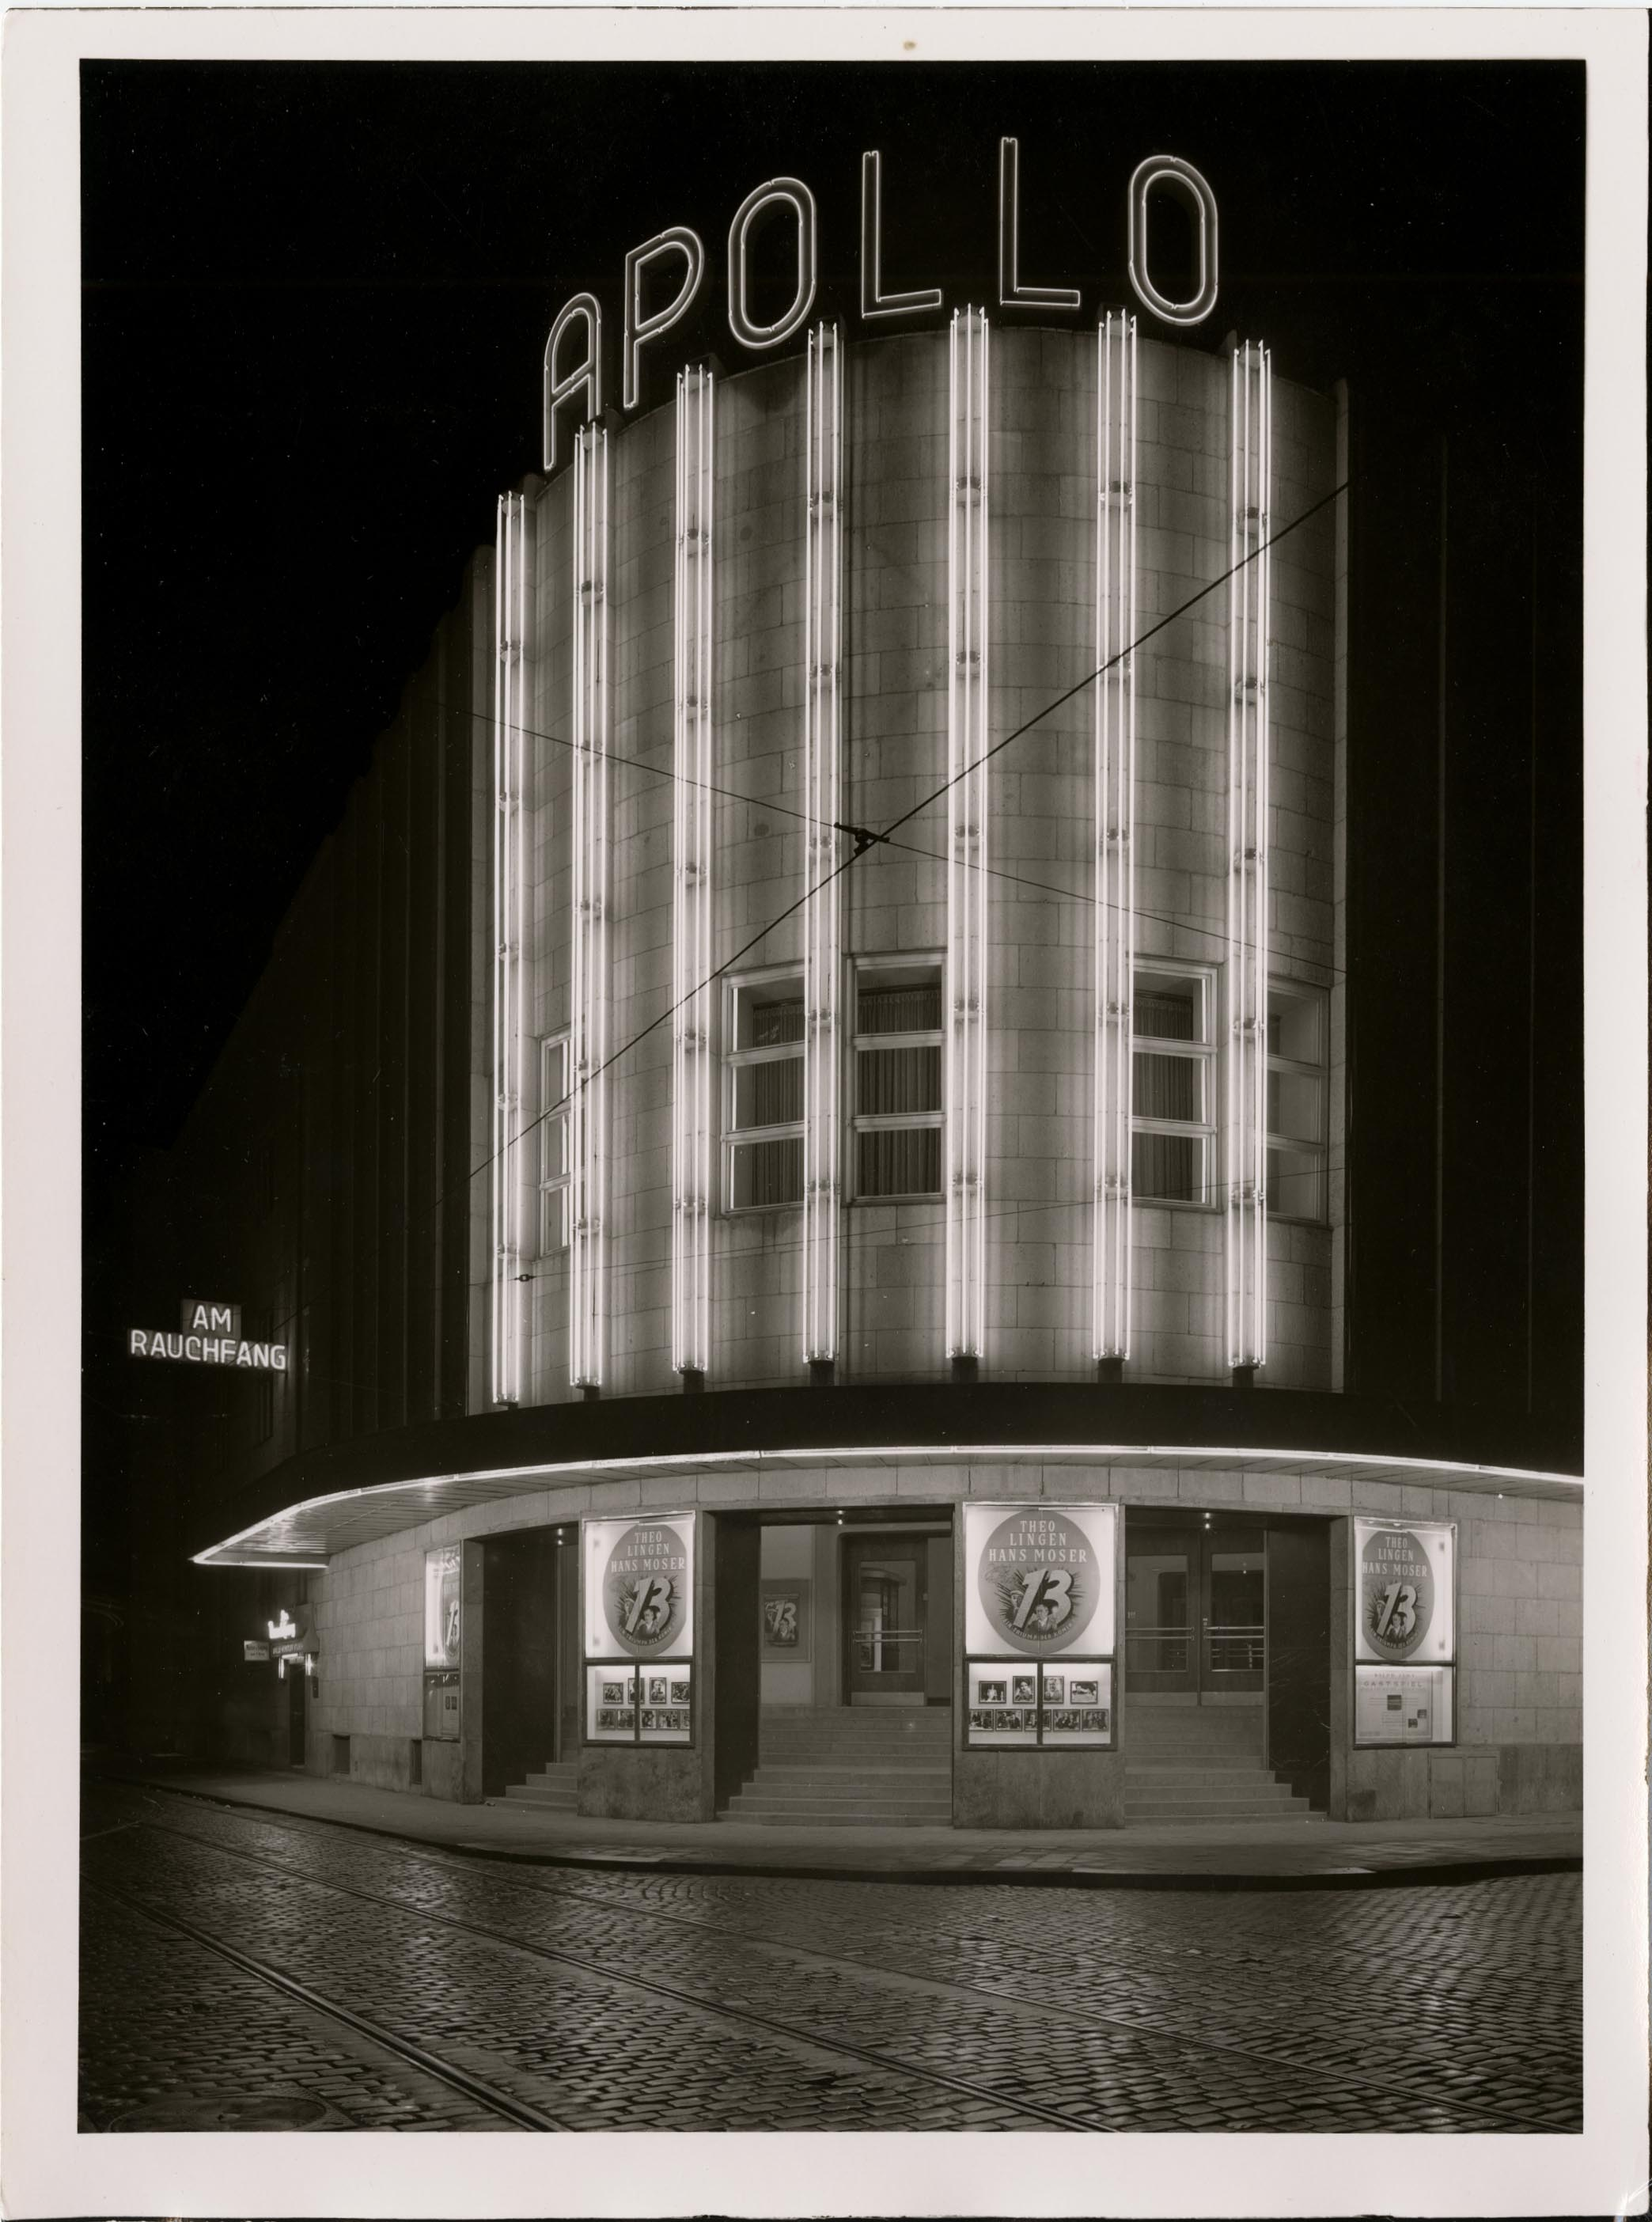 Foto: Karl Hugo Schmölz (1917-1986), Apollo Theater Gelsenkirchen, 1951 © Wim Cox, Cologne